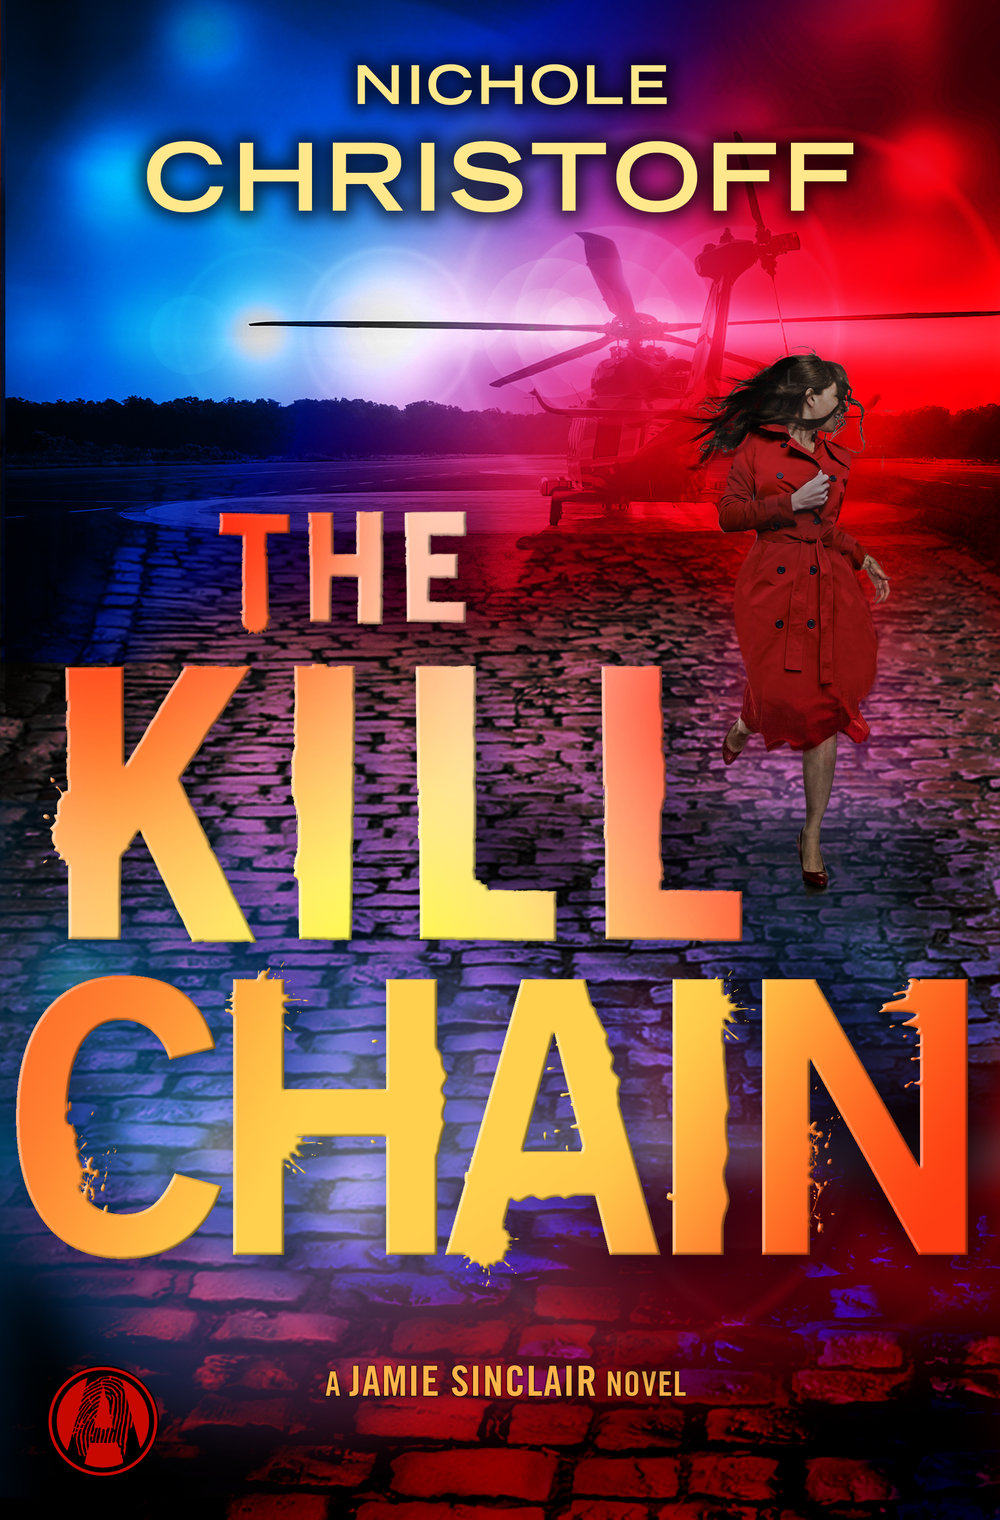 The Kill Chain - Security specialist and PI Jamie Sinclair shoots for the stars in this breakneck thriller. Her enemies shoot to kill.The Kill Chain comes your way June 12, 2018 from Nichole Christoff and Random House Alibi.